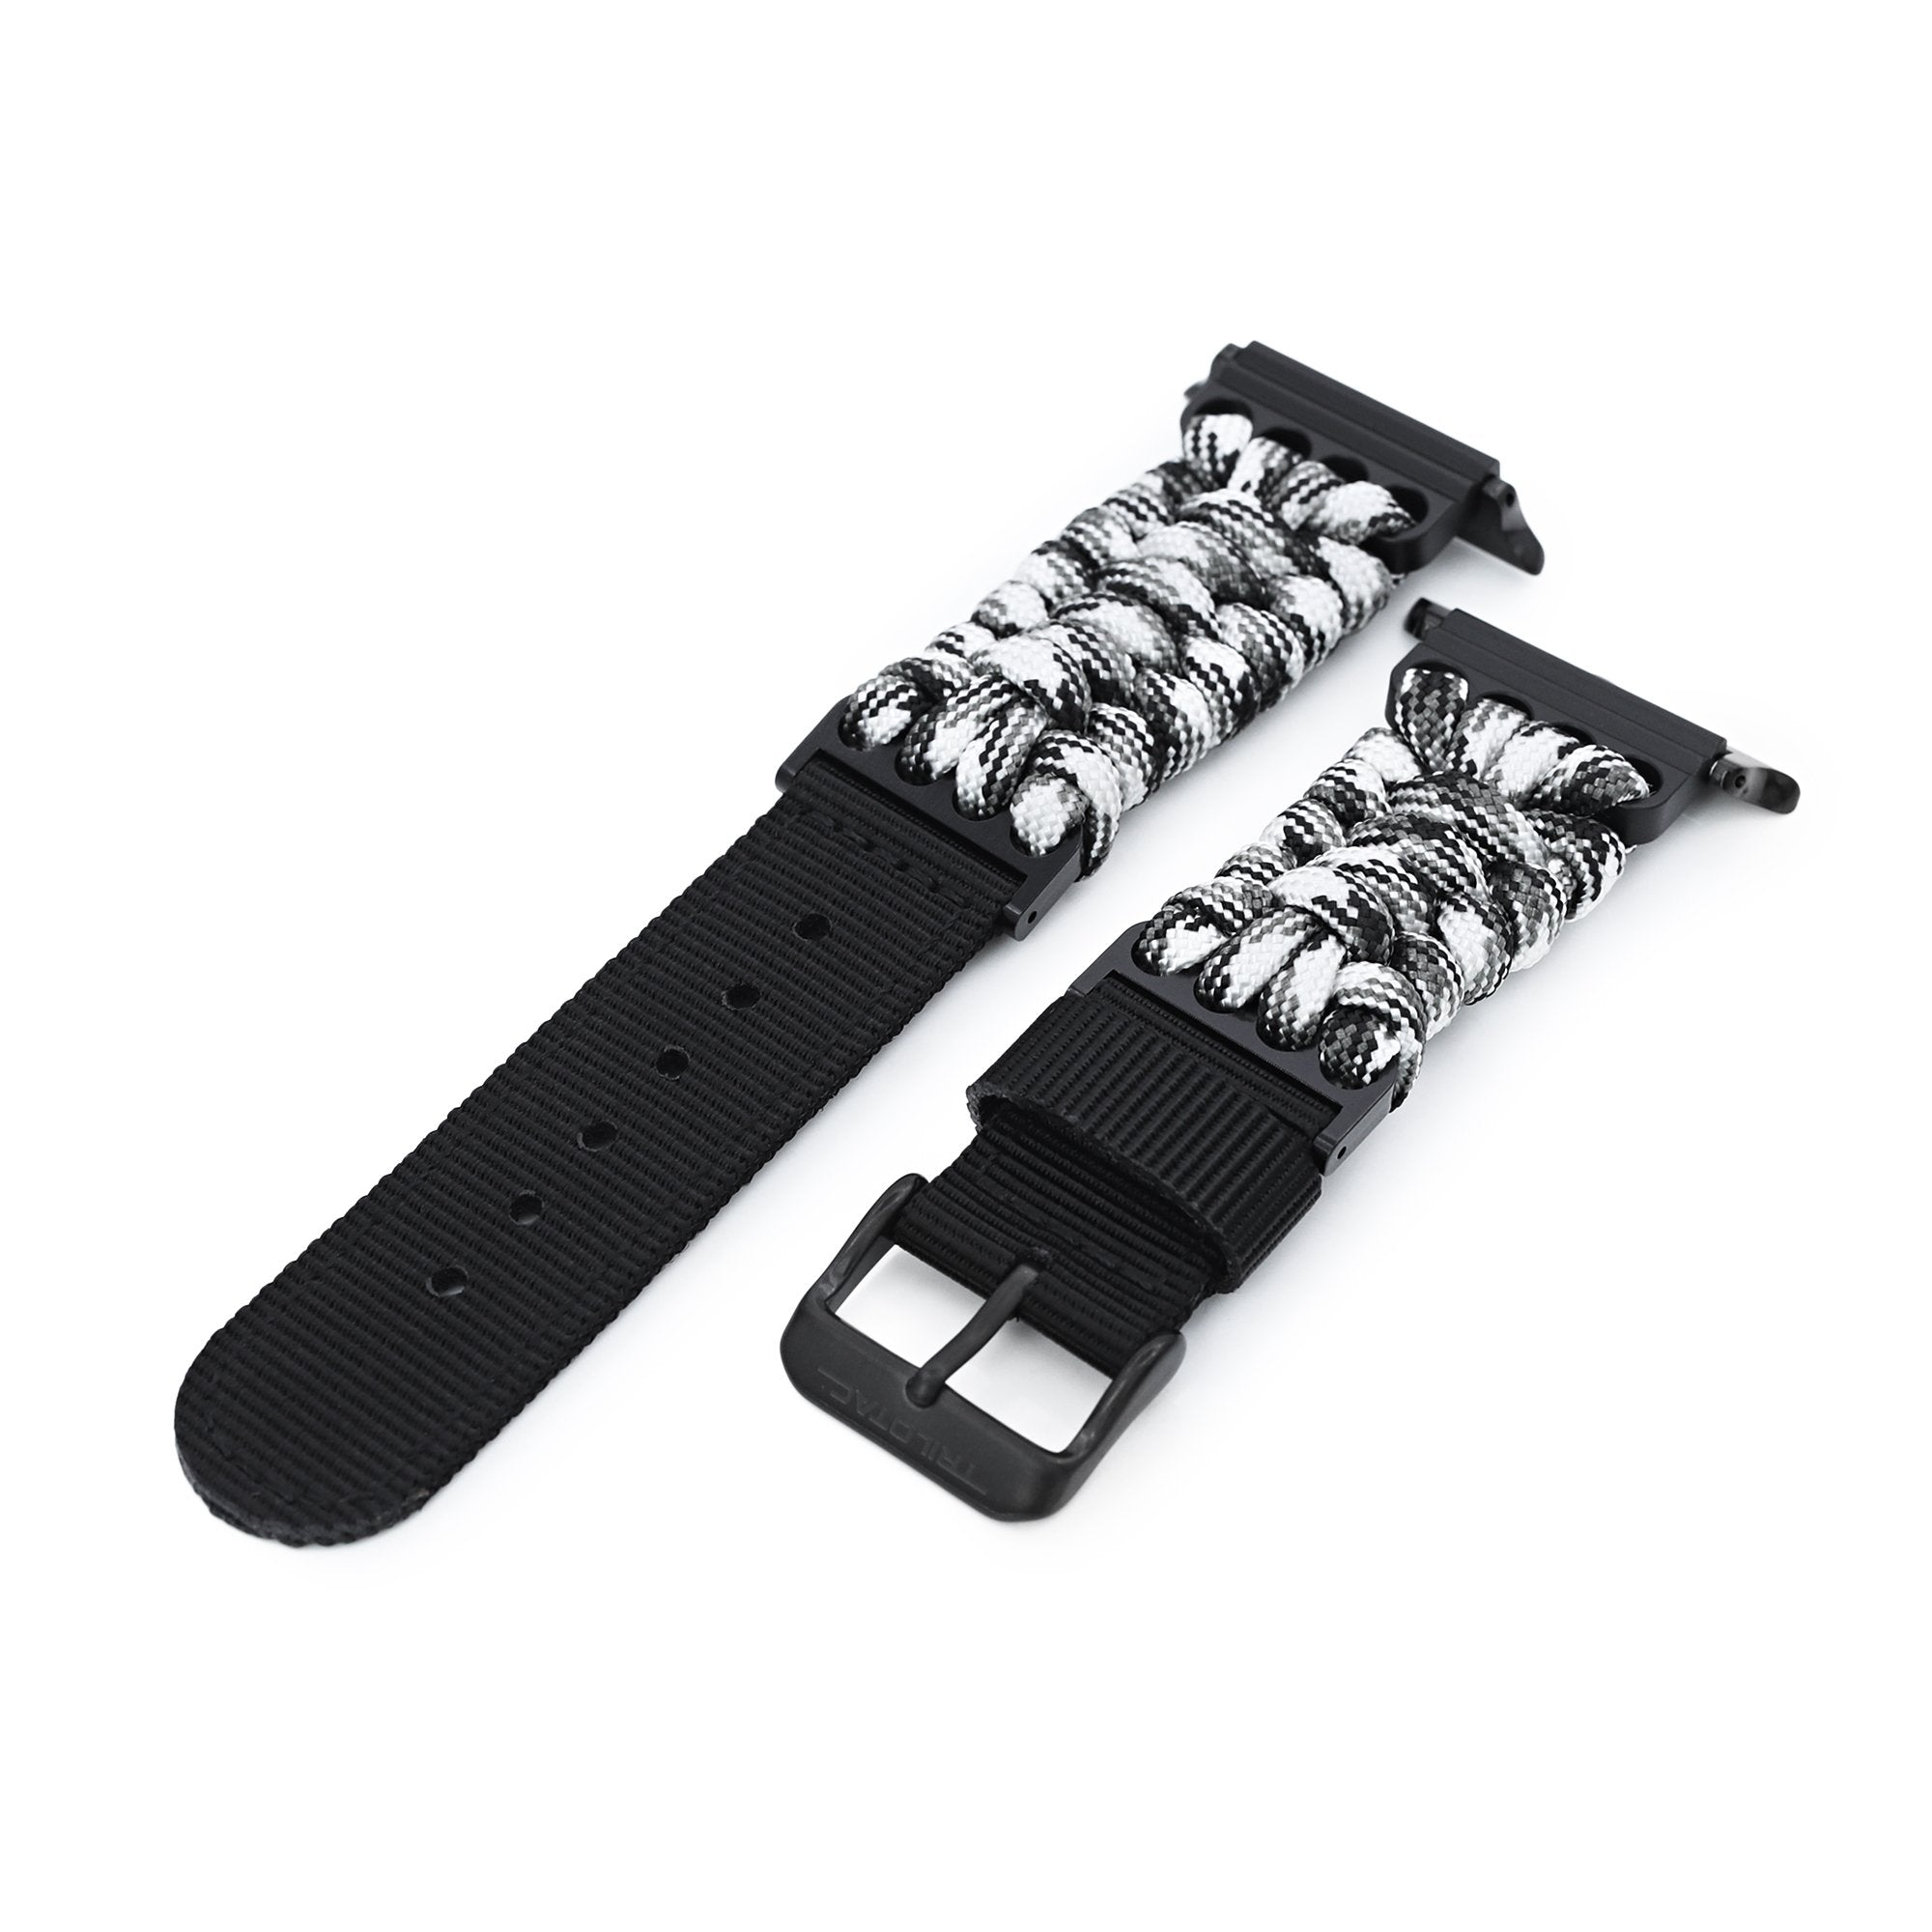 Quick Release Apple Watch 42/44mm G10 Hybrid Paracord watch band, Camo Beige & Black Strapcode Watch Bands